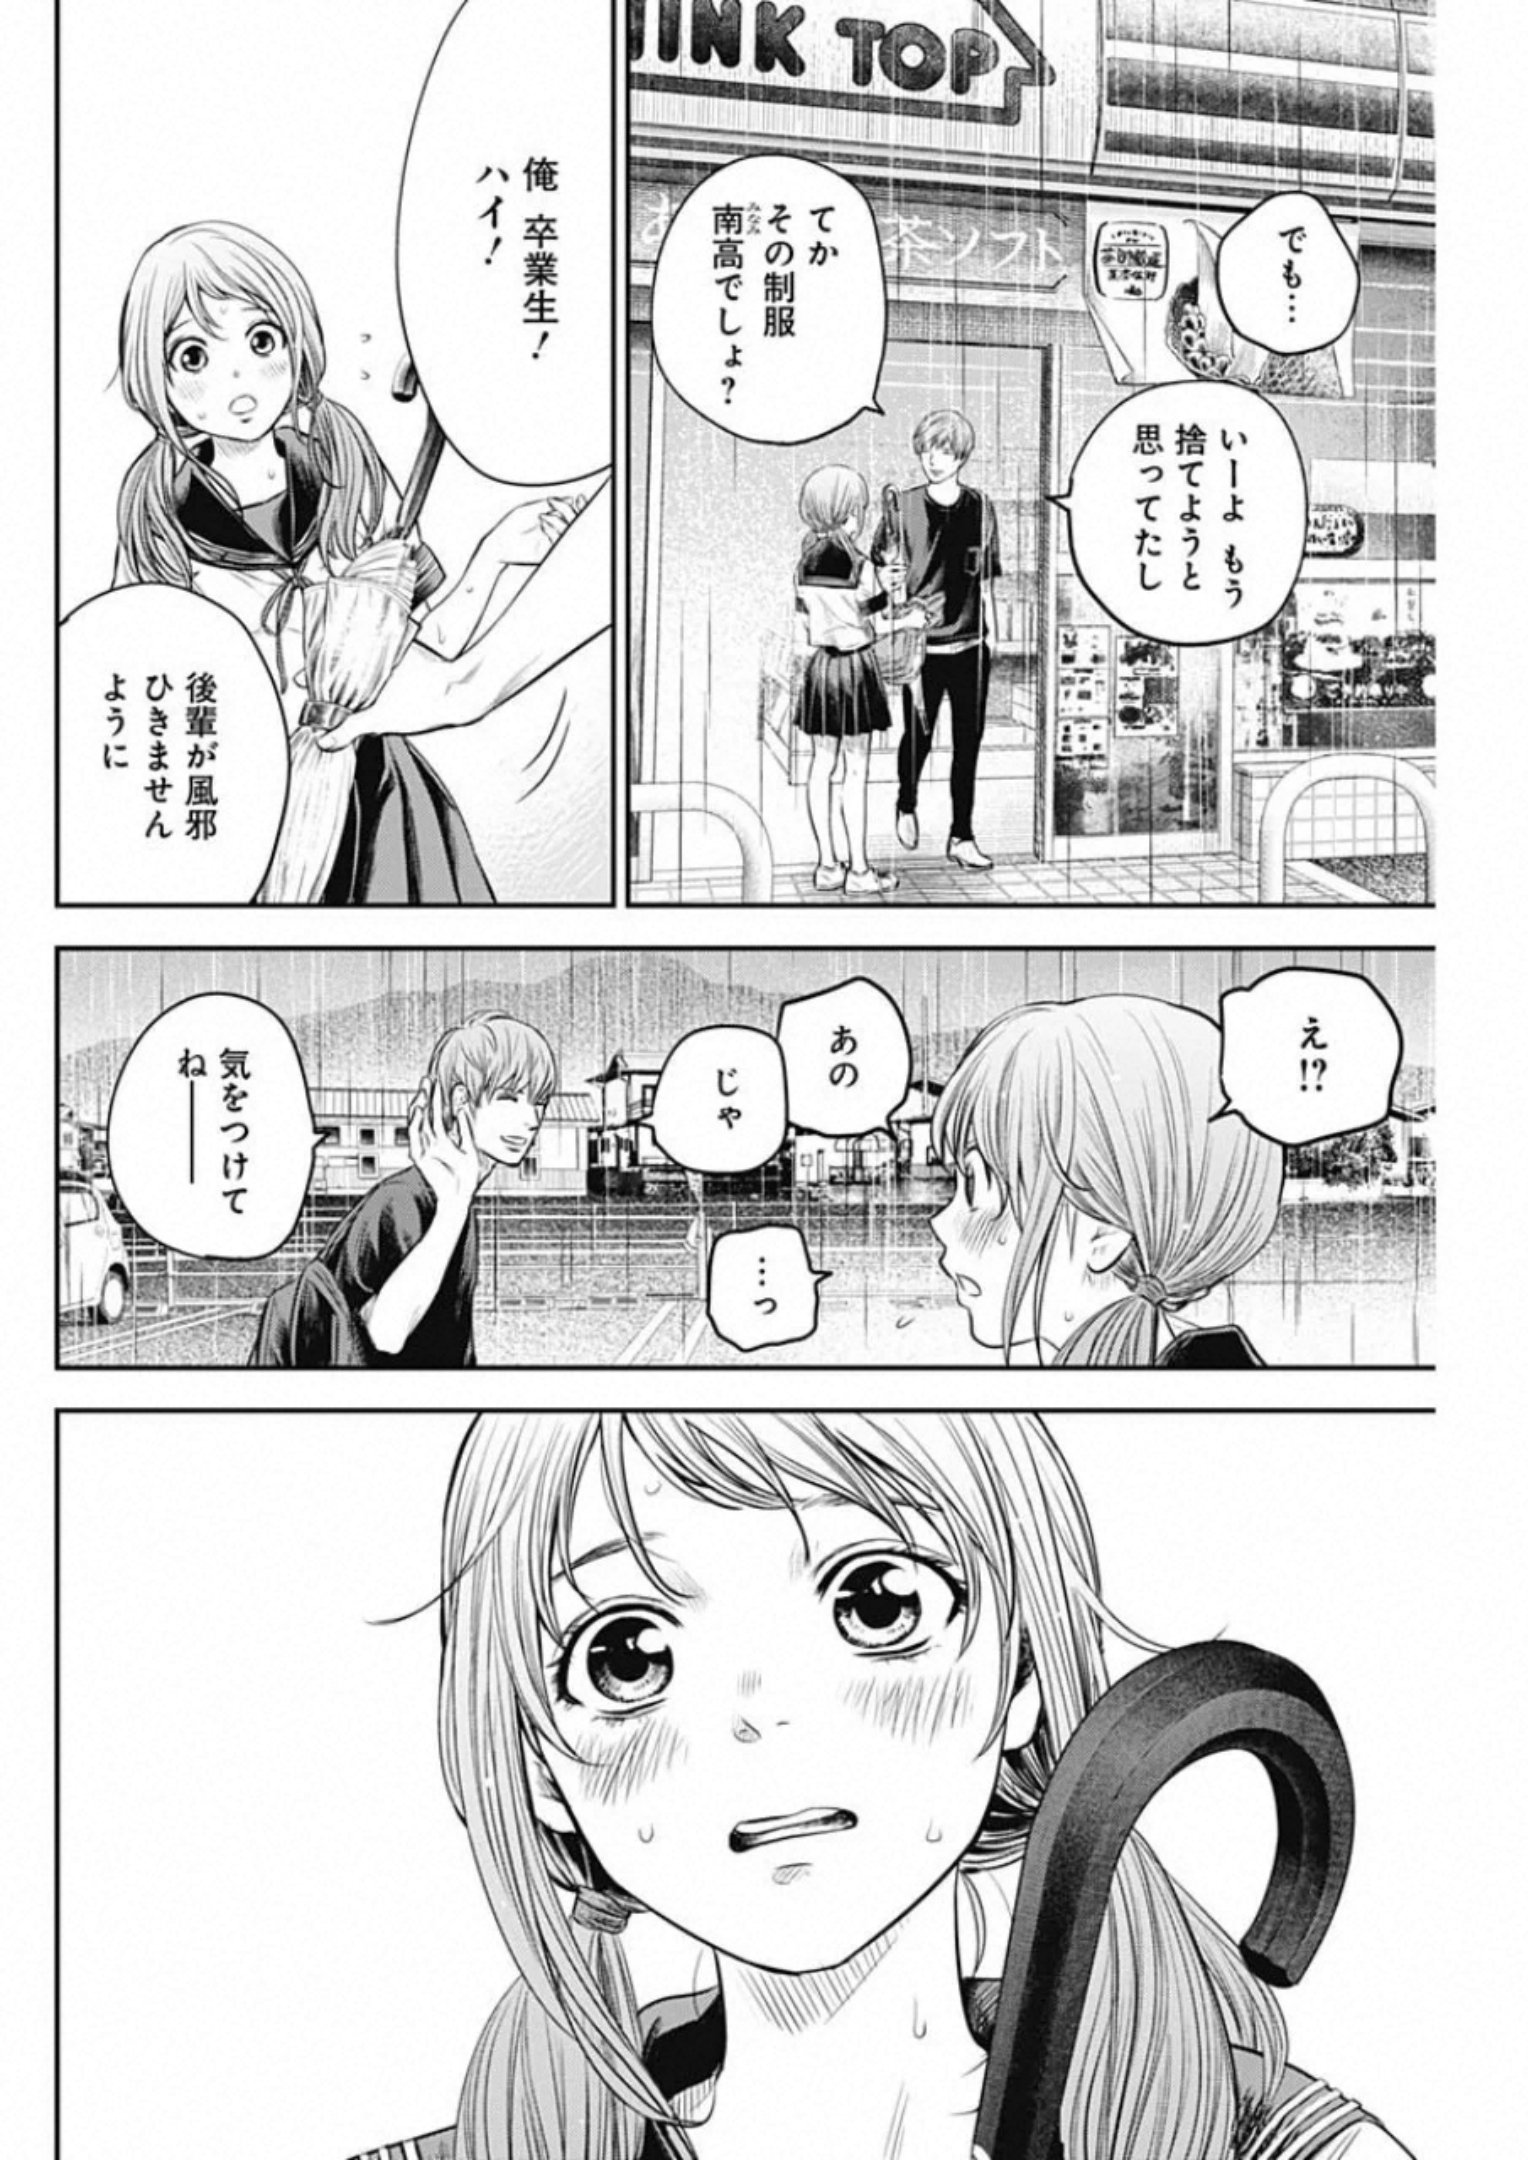 Manga Raw adabana NON Chapter 10